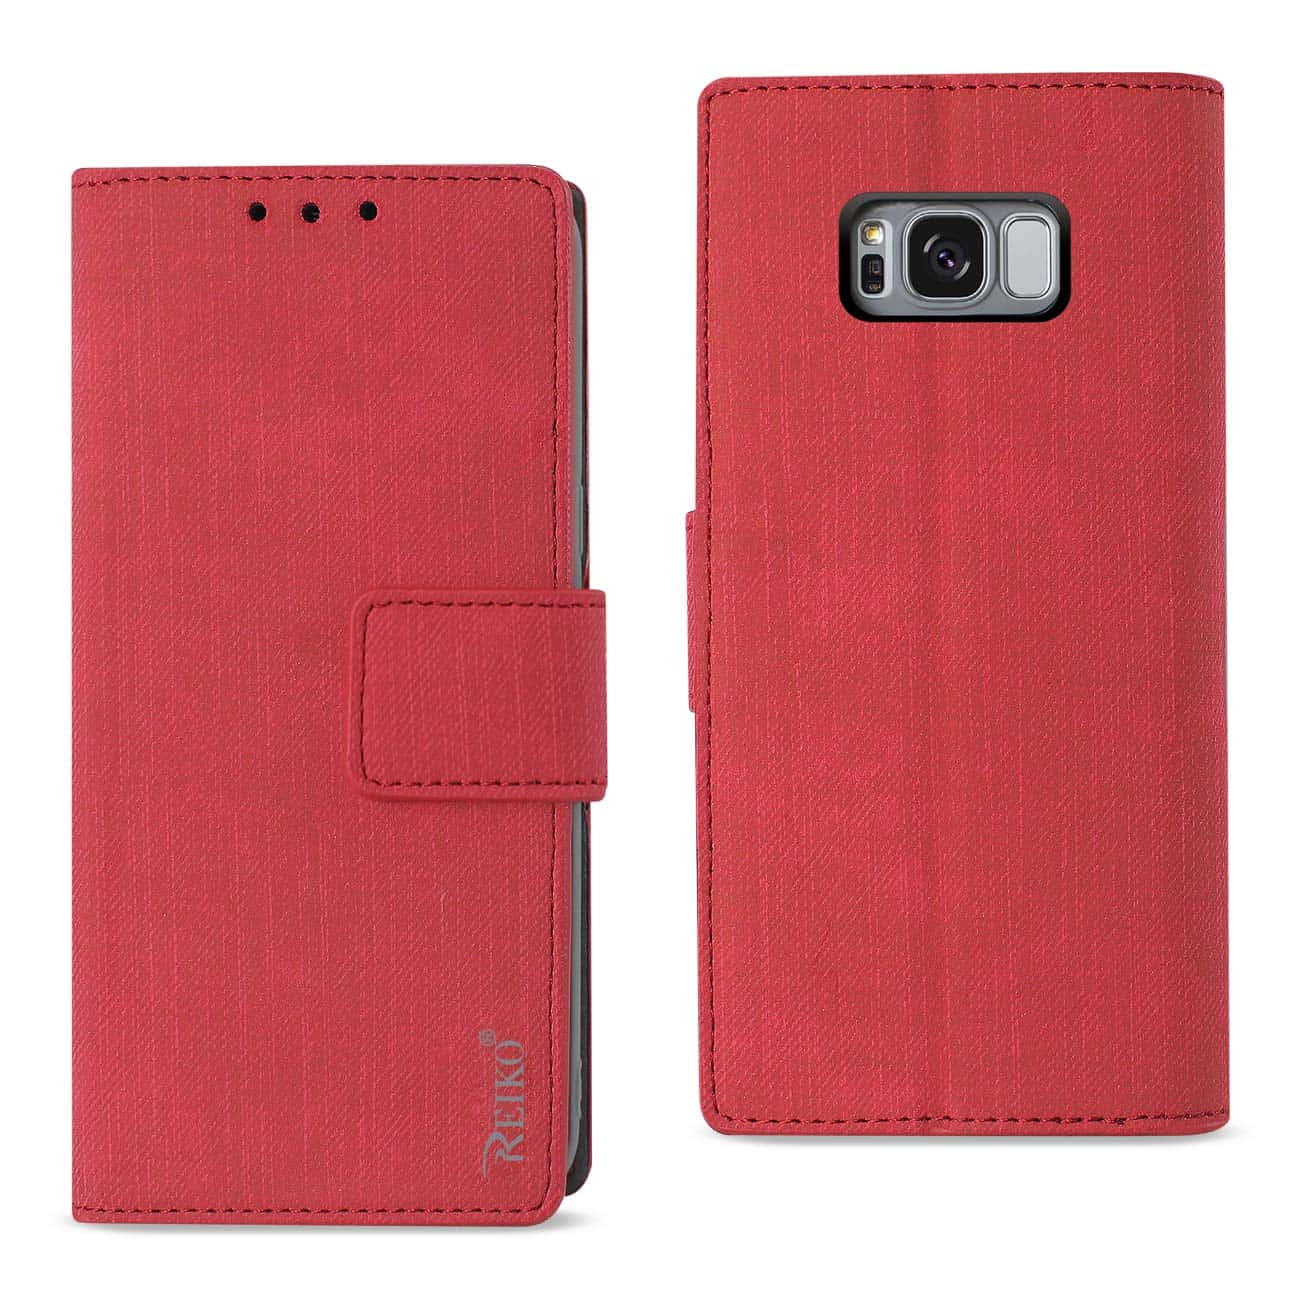 SAMSUNG GALAXY S8/ SM DENIM WALLET CASE WITH GUMMY INNER SHELL AND KICKSTAND FUNCTION IN RED